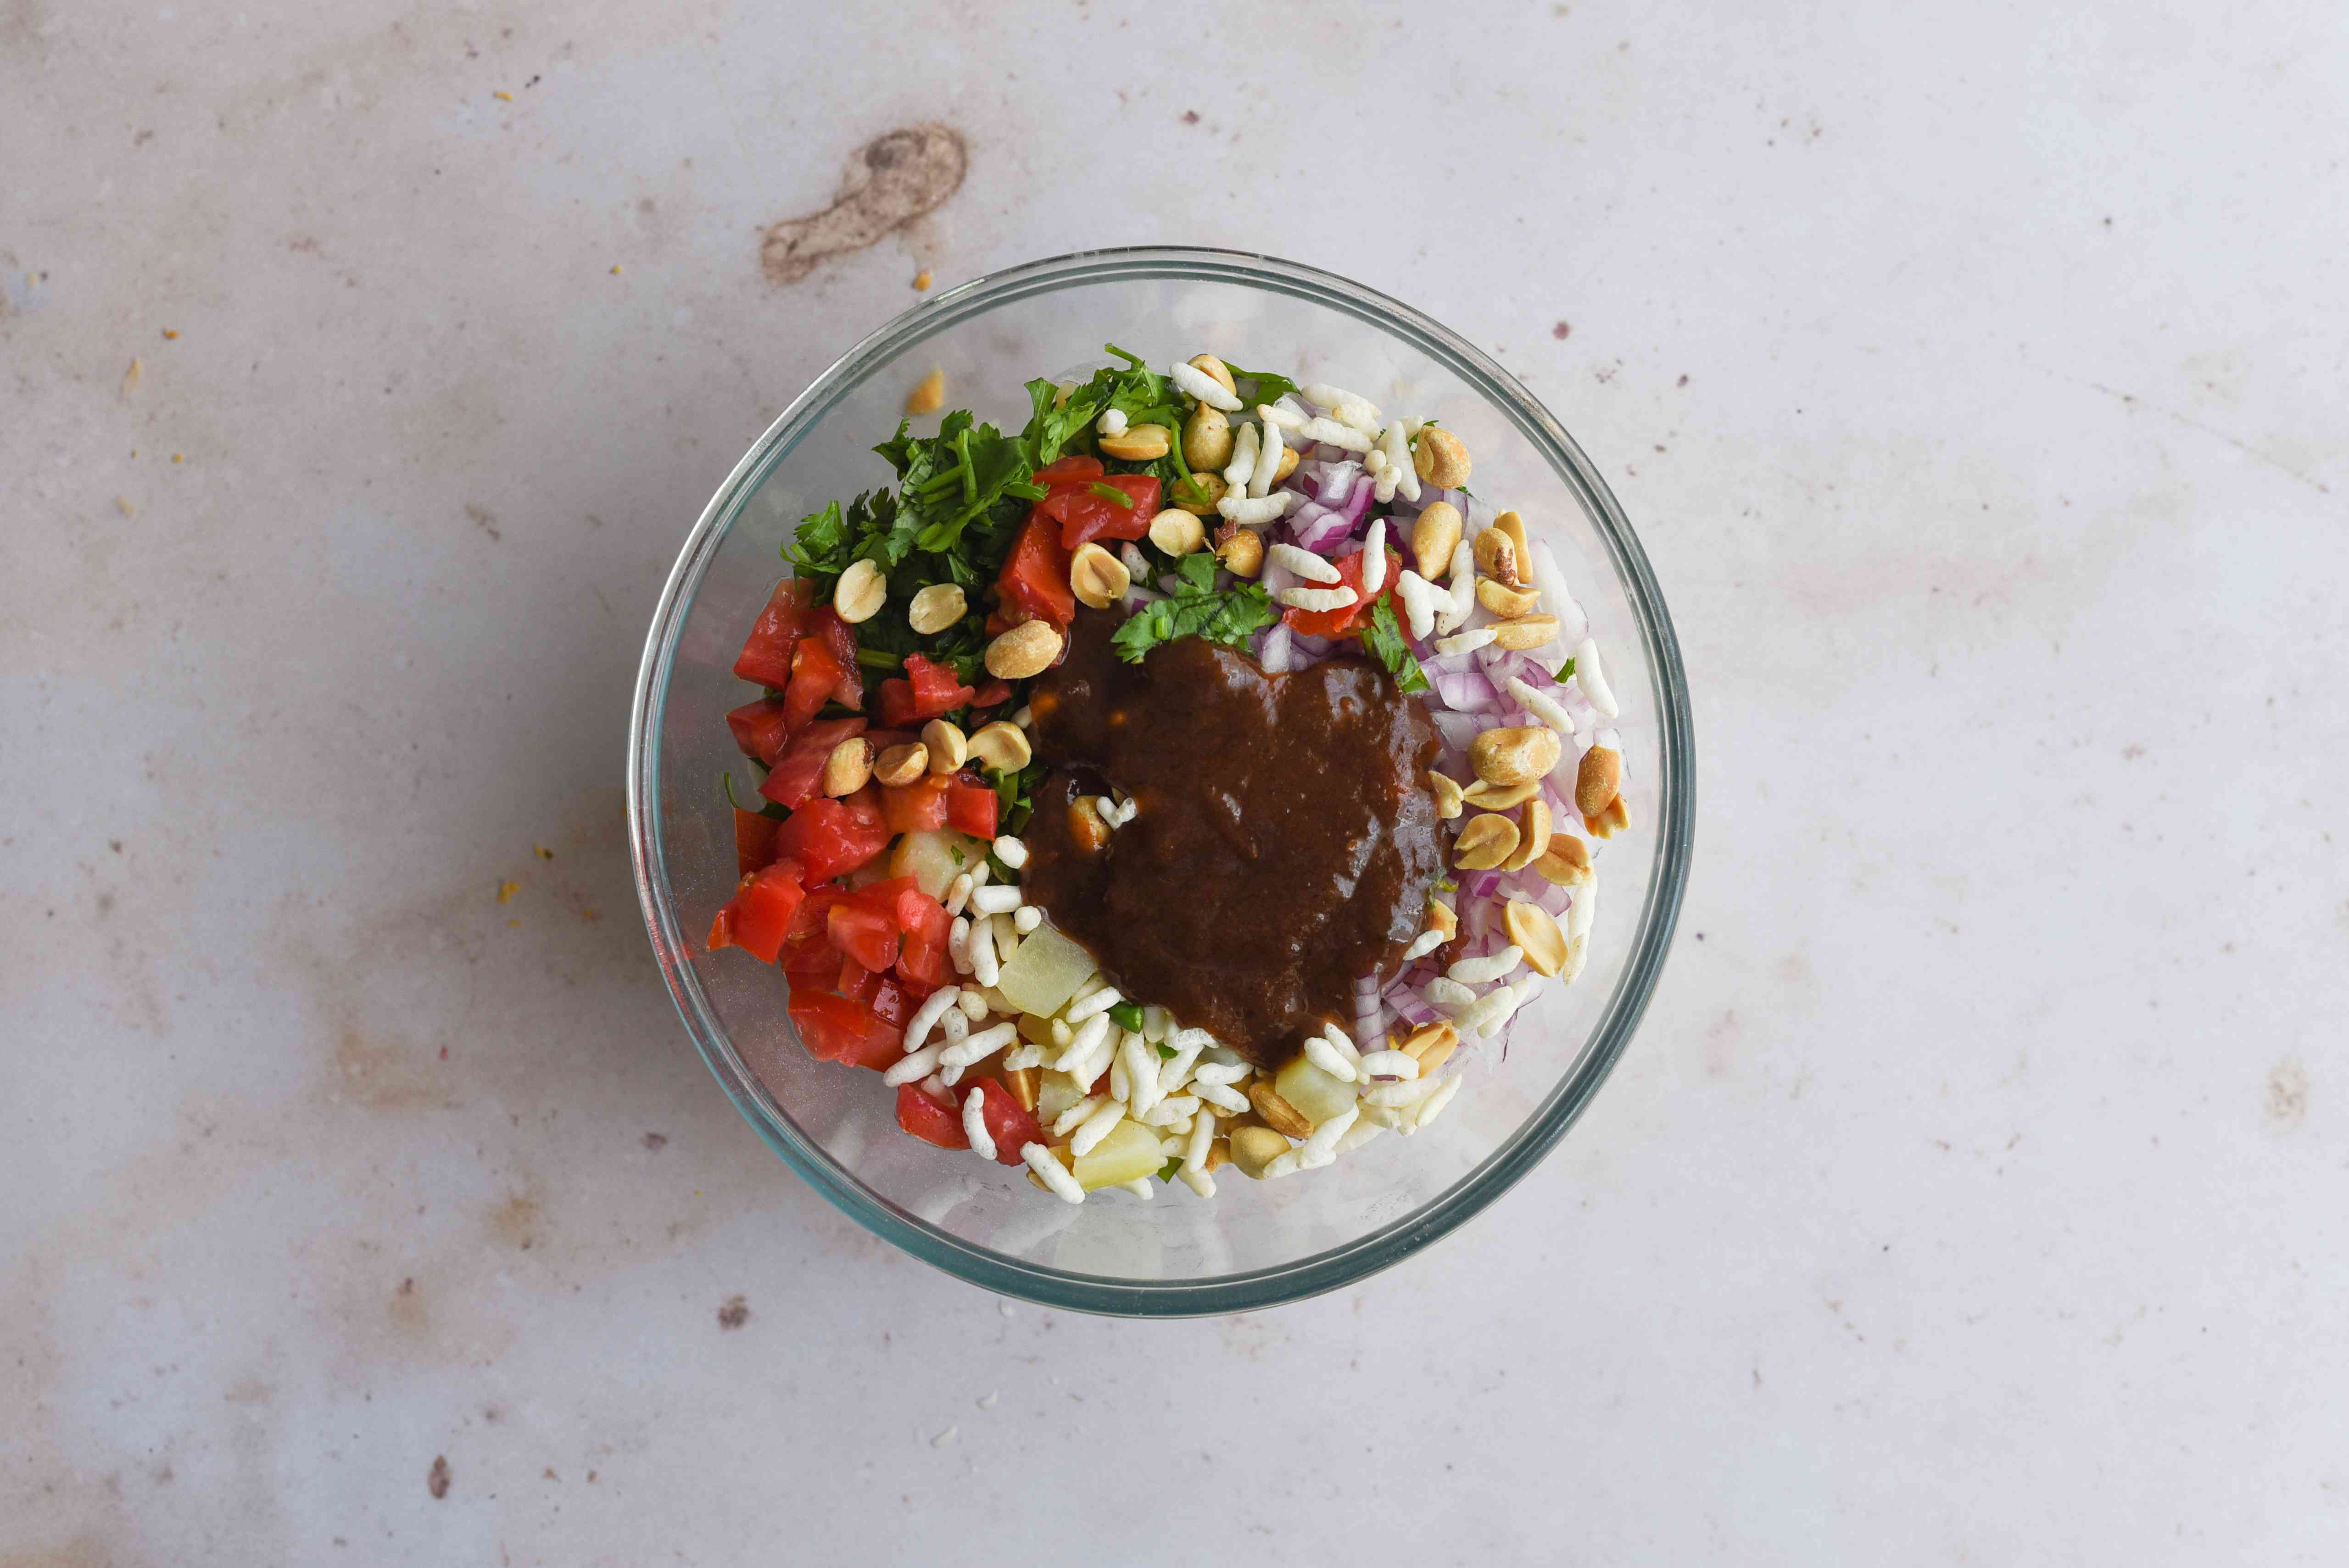 Add the tamarind chutney or mint-coriander chutney to the ingredients in the bowl